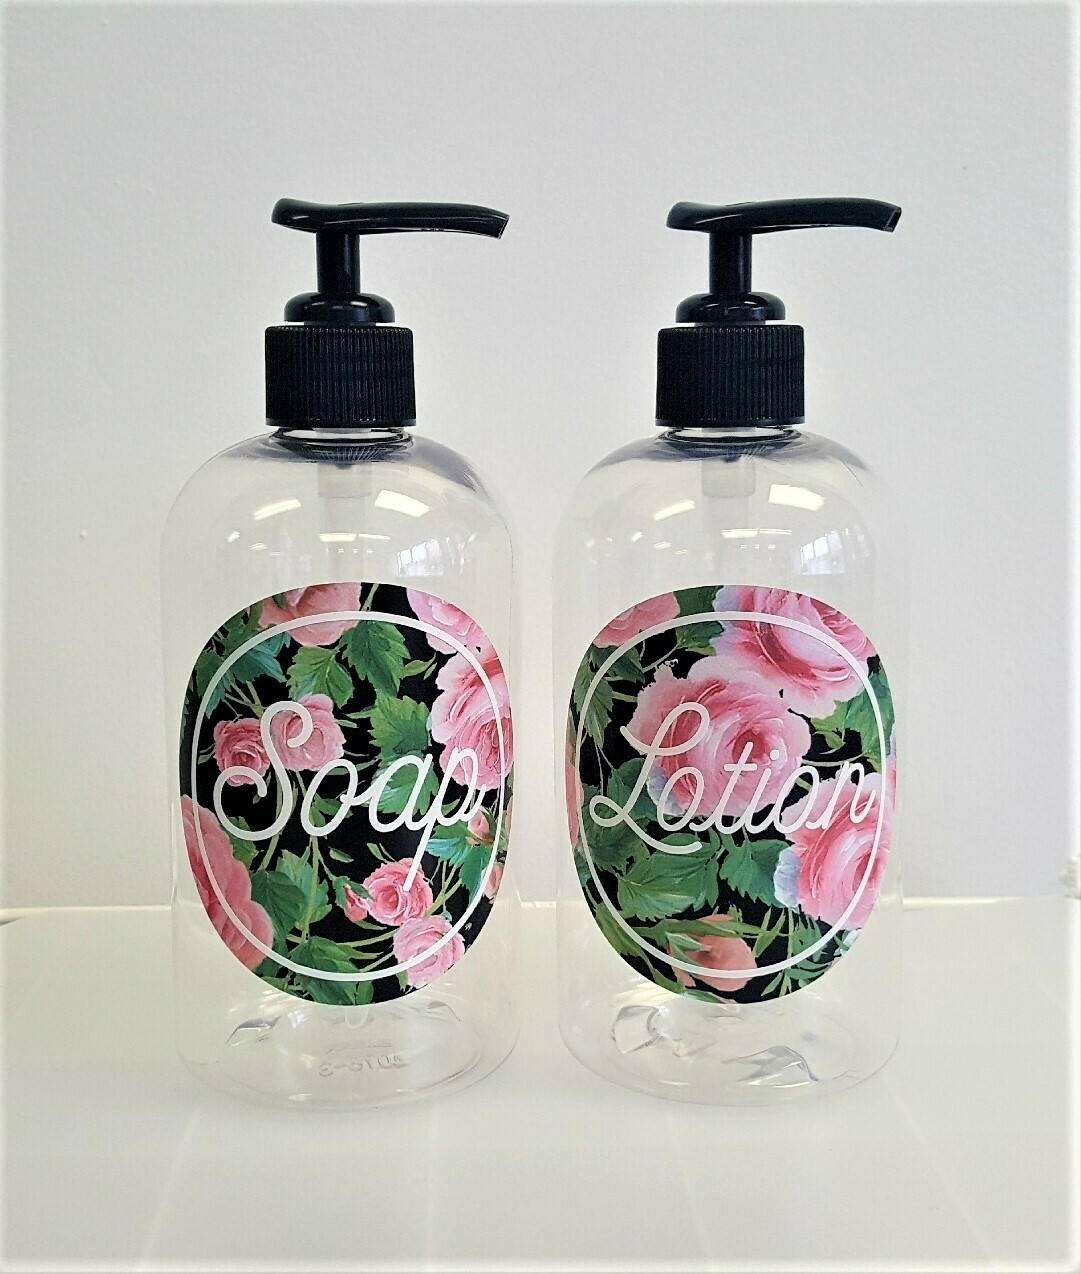 Hand Soap & Hand Lotion Bottle Set - pink rose design